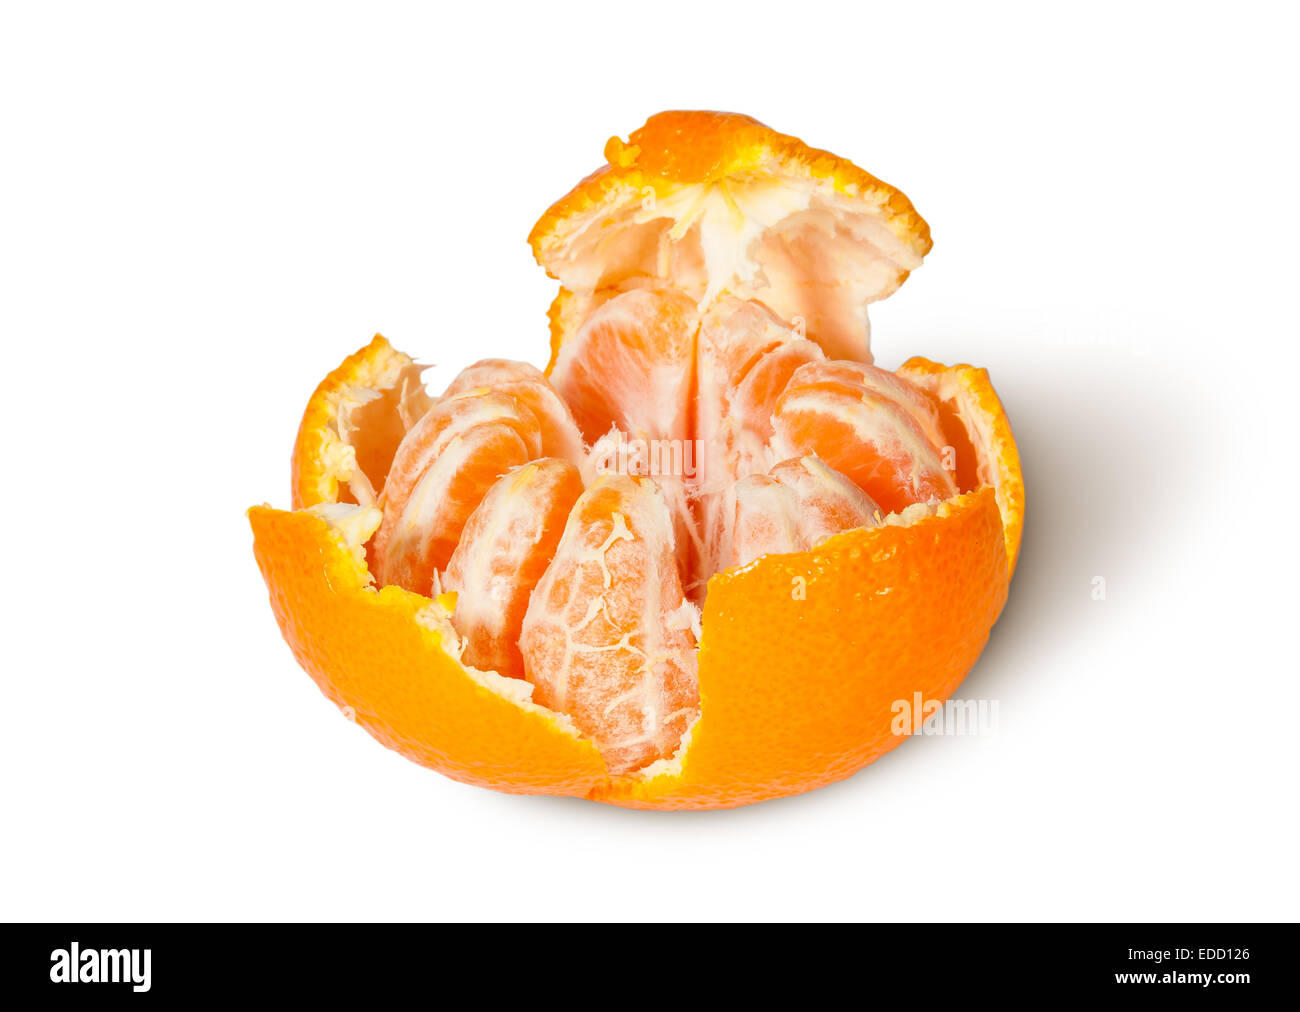 Partially Purified And Broken Tangerine Isolated On White Background - Stock Image